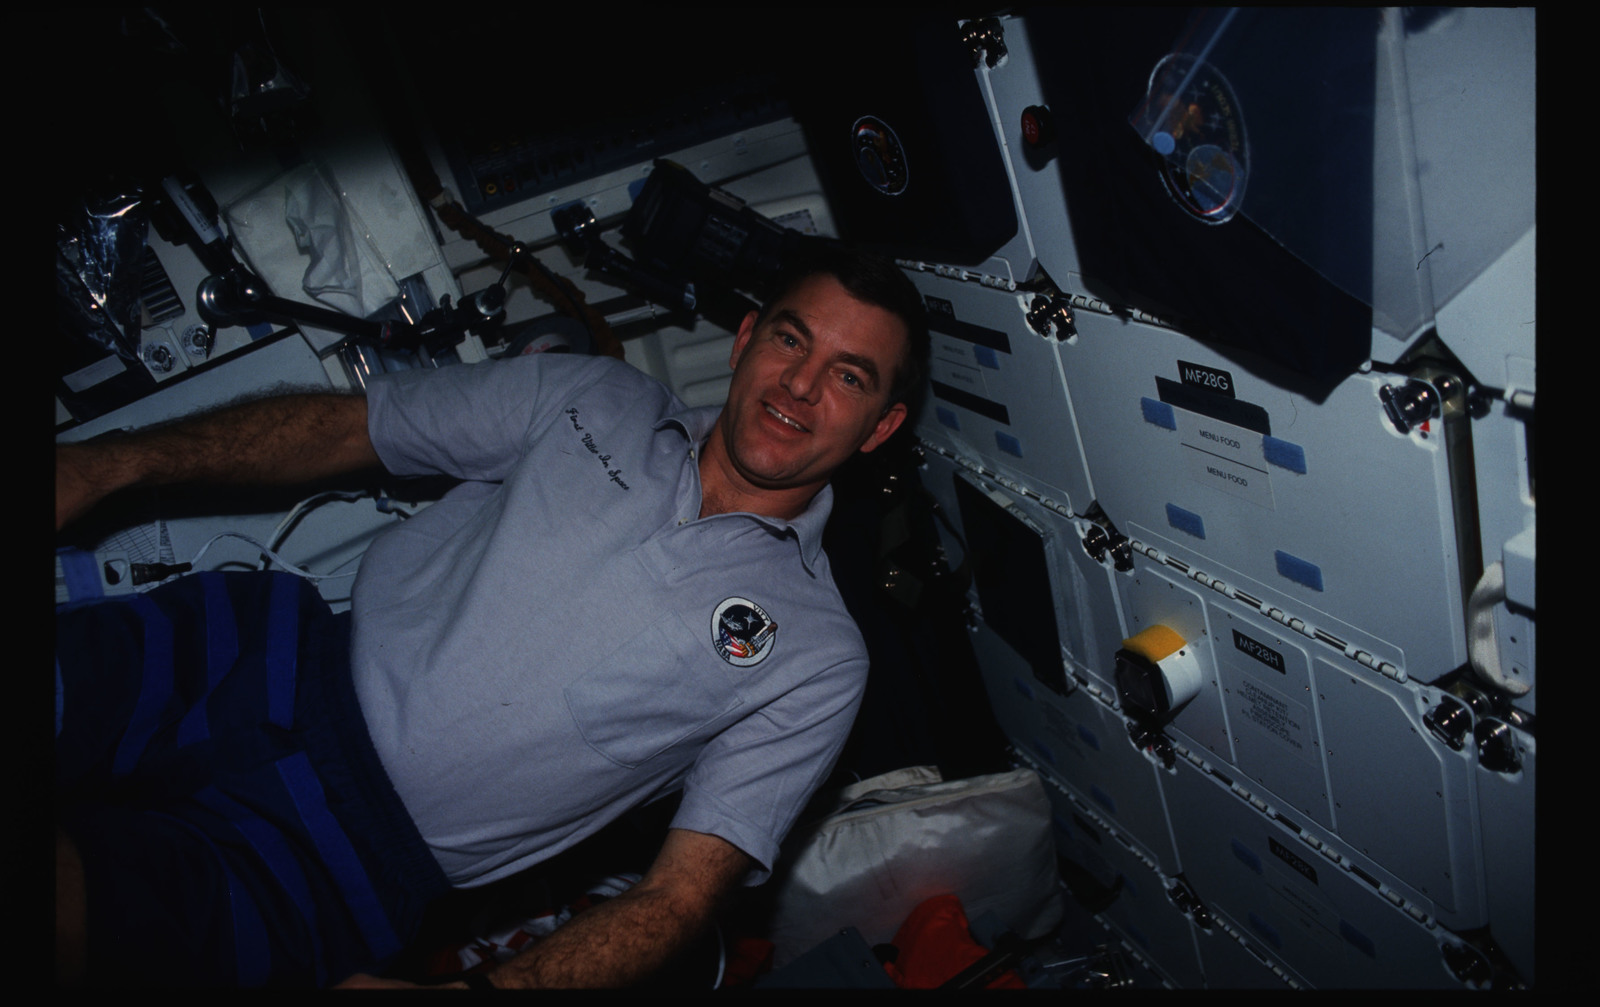 STS044-19-009 - STS-044 - STS-44 Voss poses for a photo with a VITT polo shirt on OV-104's middeck